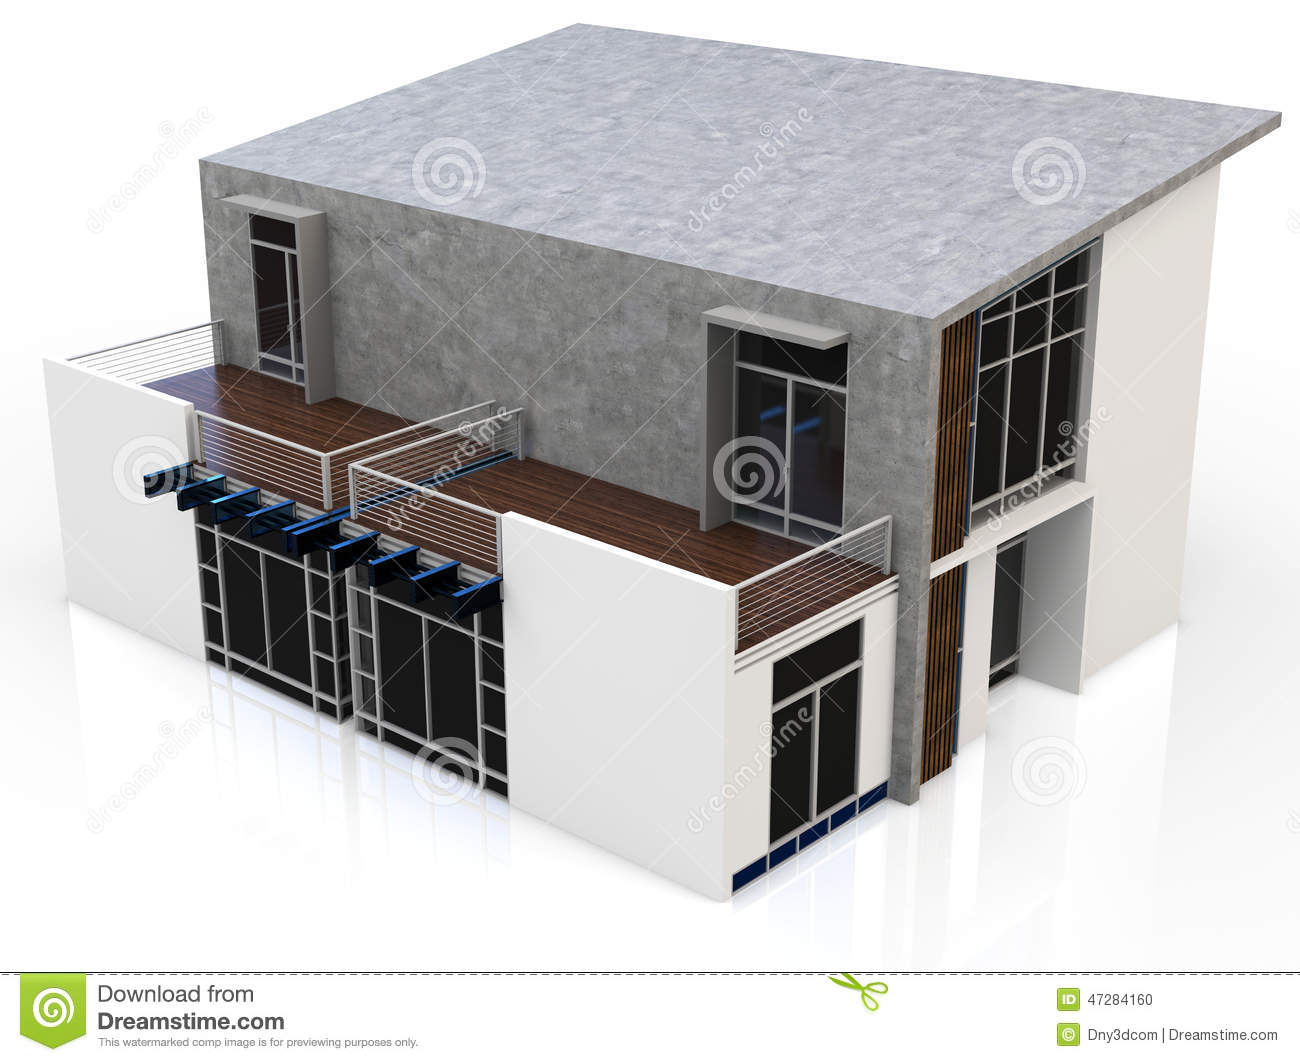 Maison 3d duplex moderne illustration stock image du for Plan maison duplex